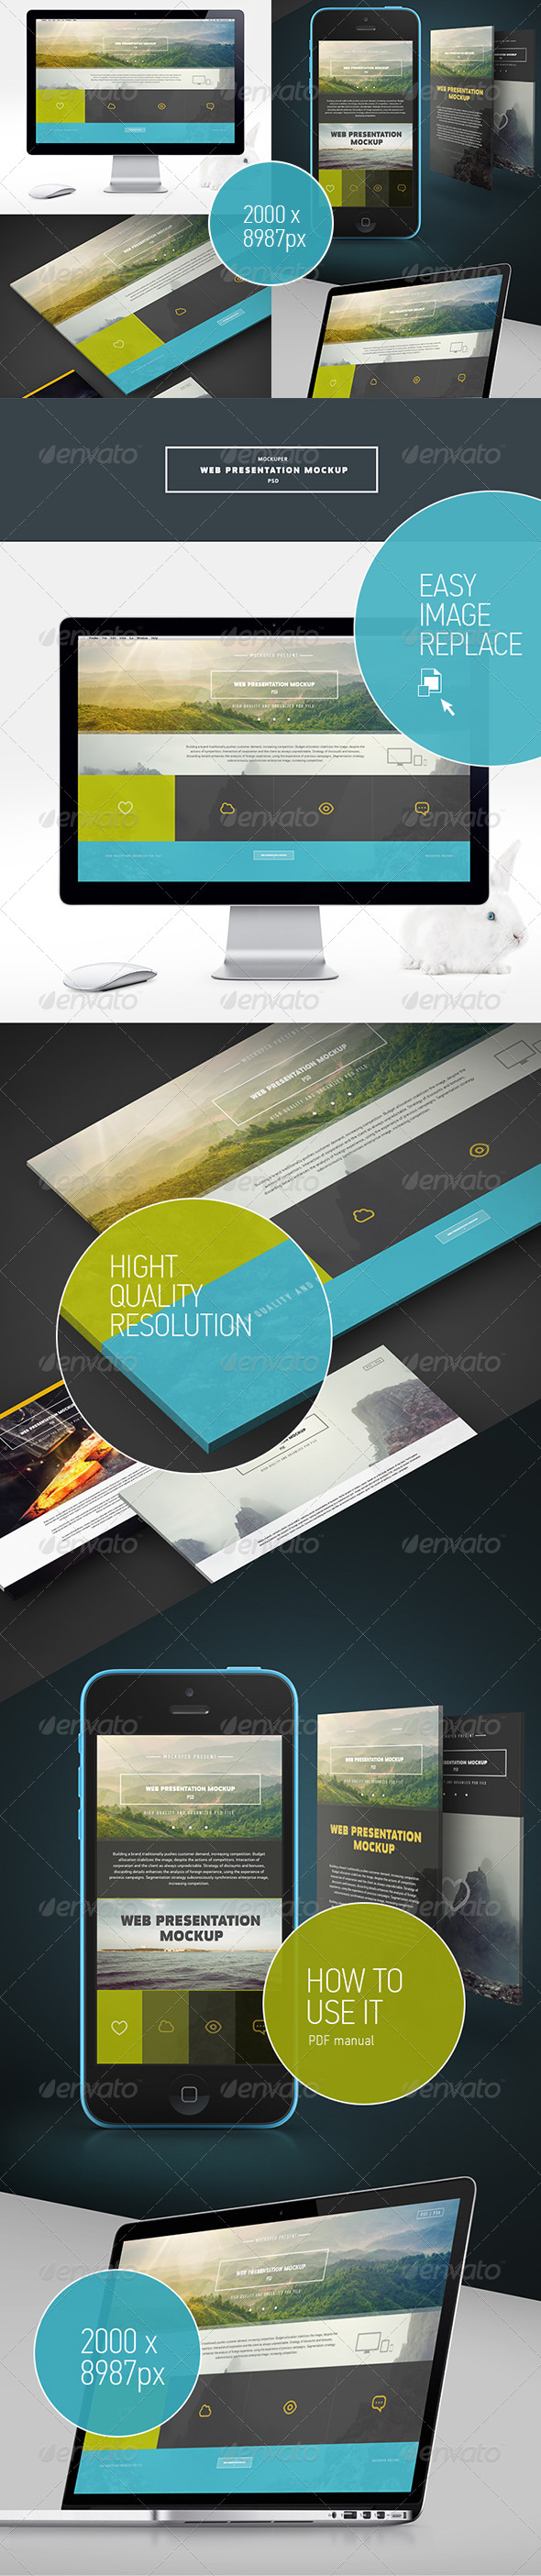 GraphicRiver Web Presentation Mock-Up PSD 7700900